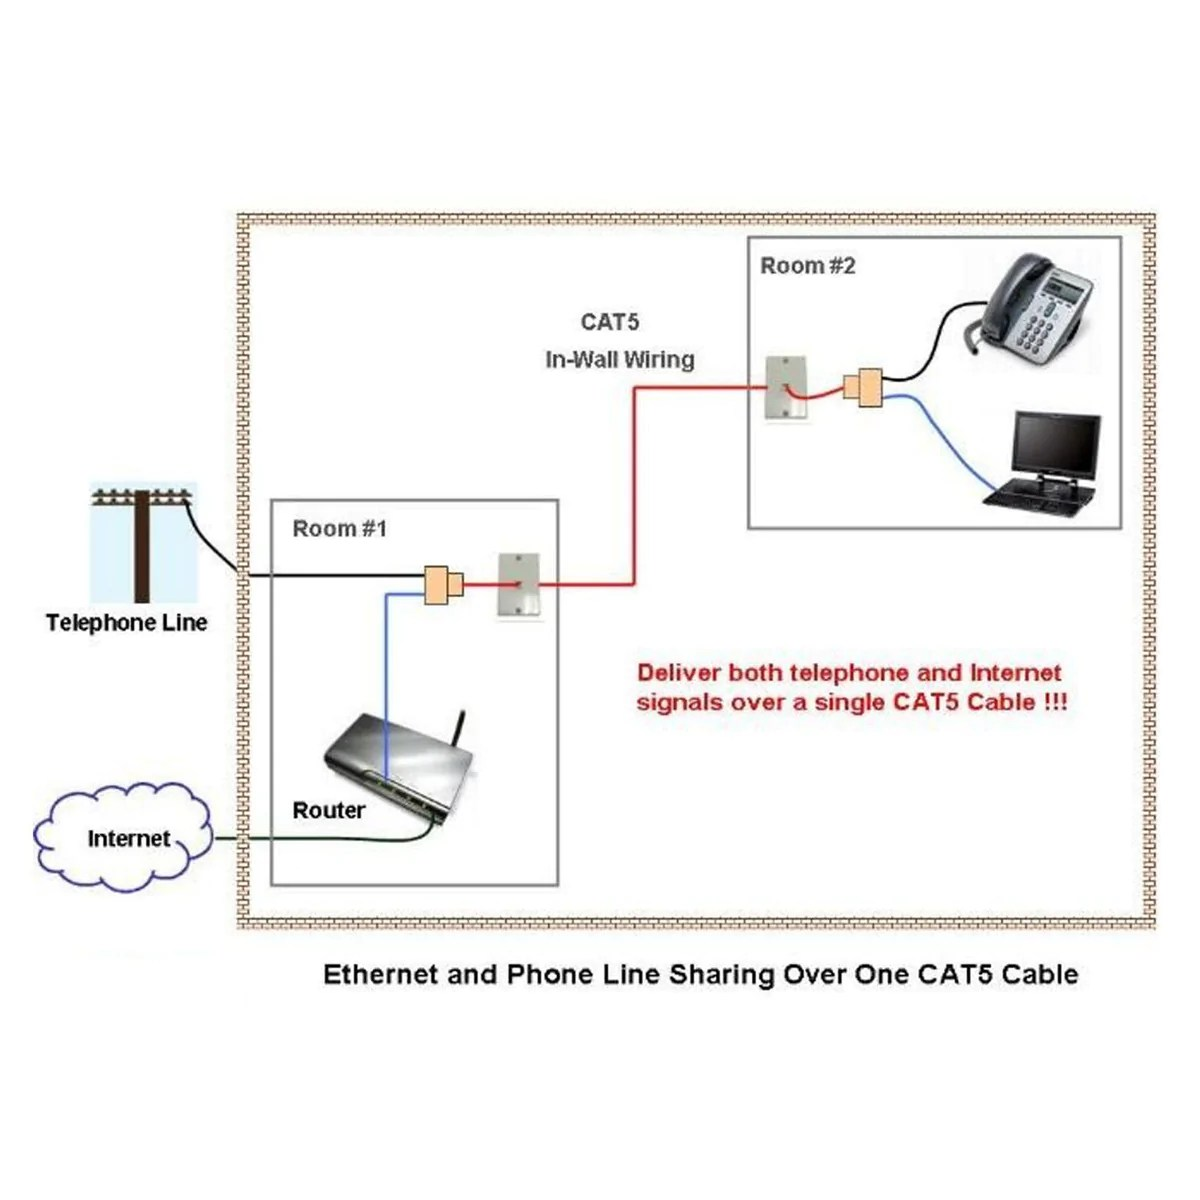 small resolution of rj45 rj11 splitter cable sharing kit for ethernet and phone lines dualcomm